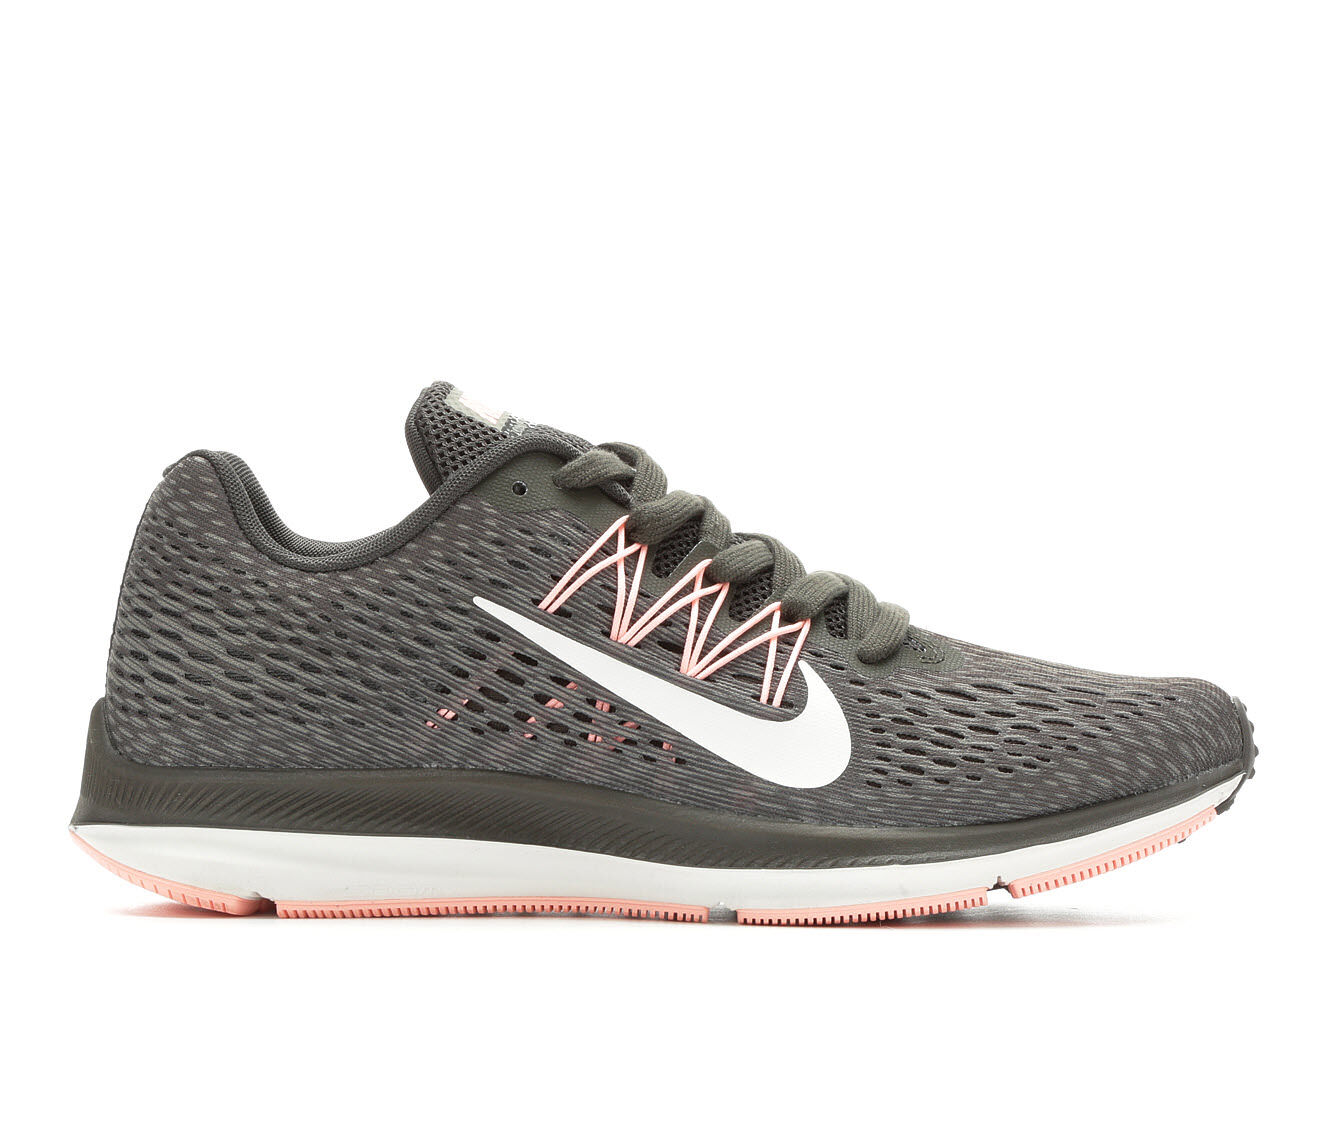 cheapest new series Women's Nike Zoom Winflo 5 Running Shoes Grey/Wht/Stucco